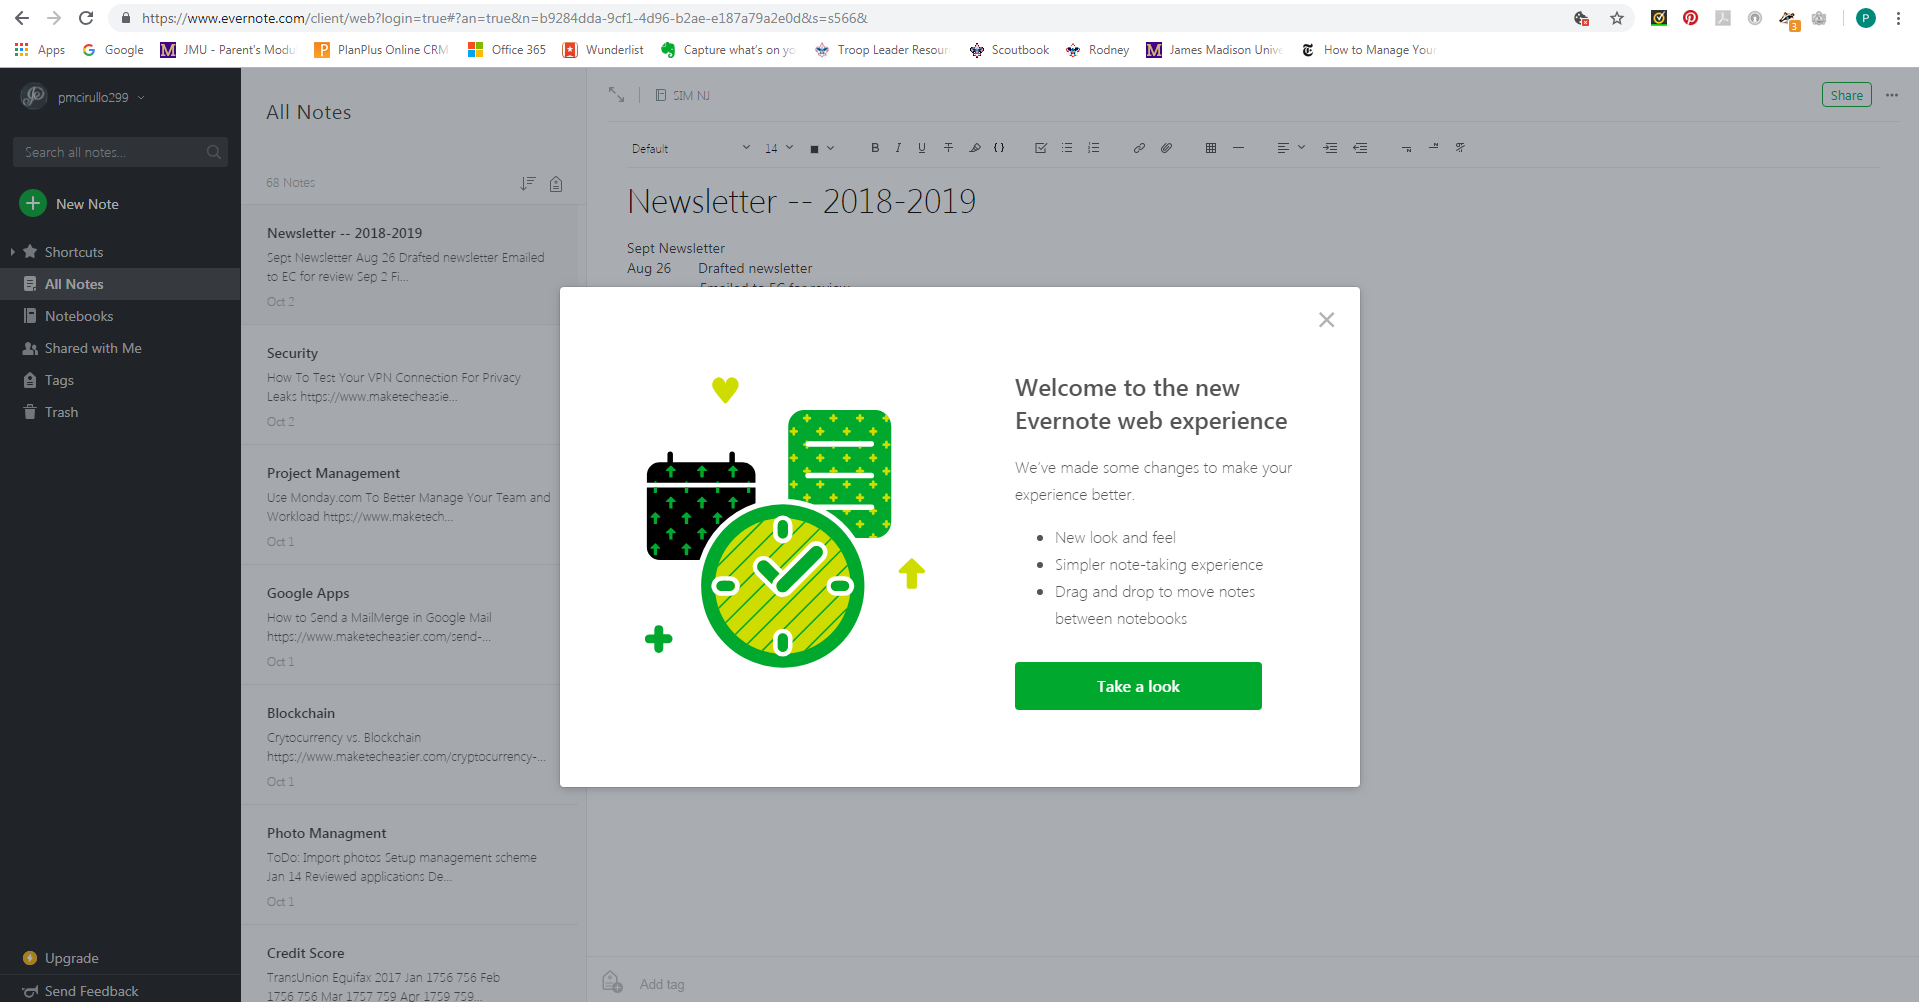 Issue with New Look box on Login - Web Client - Evernote